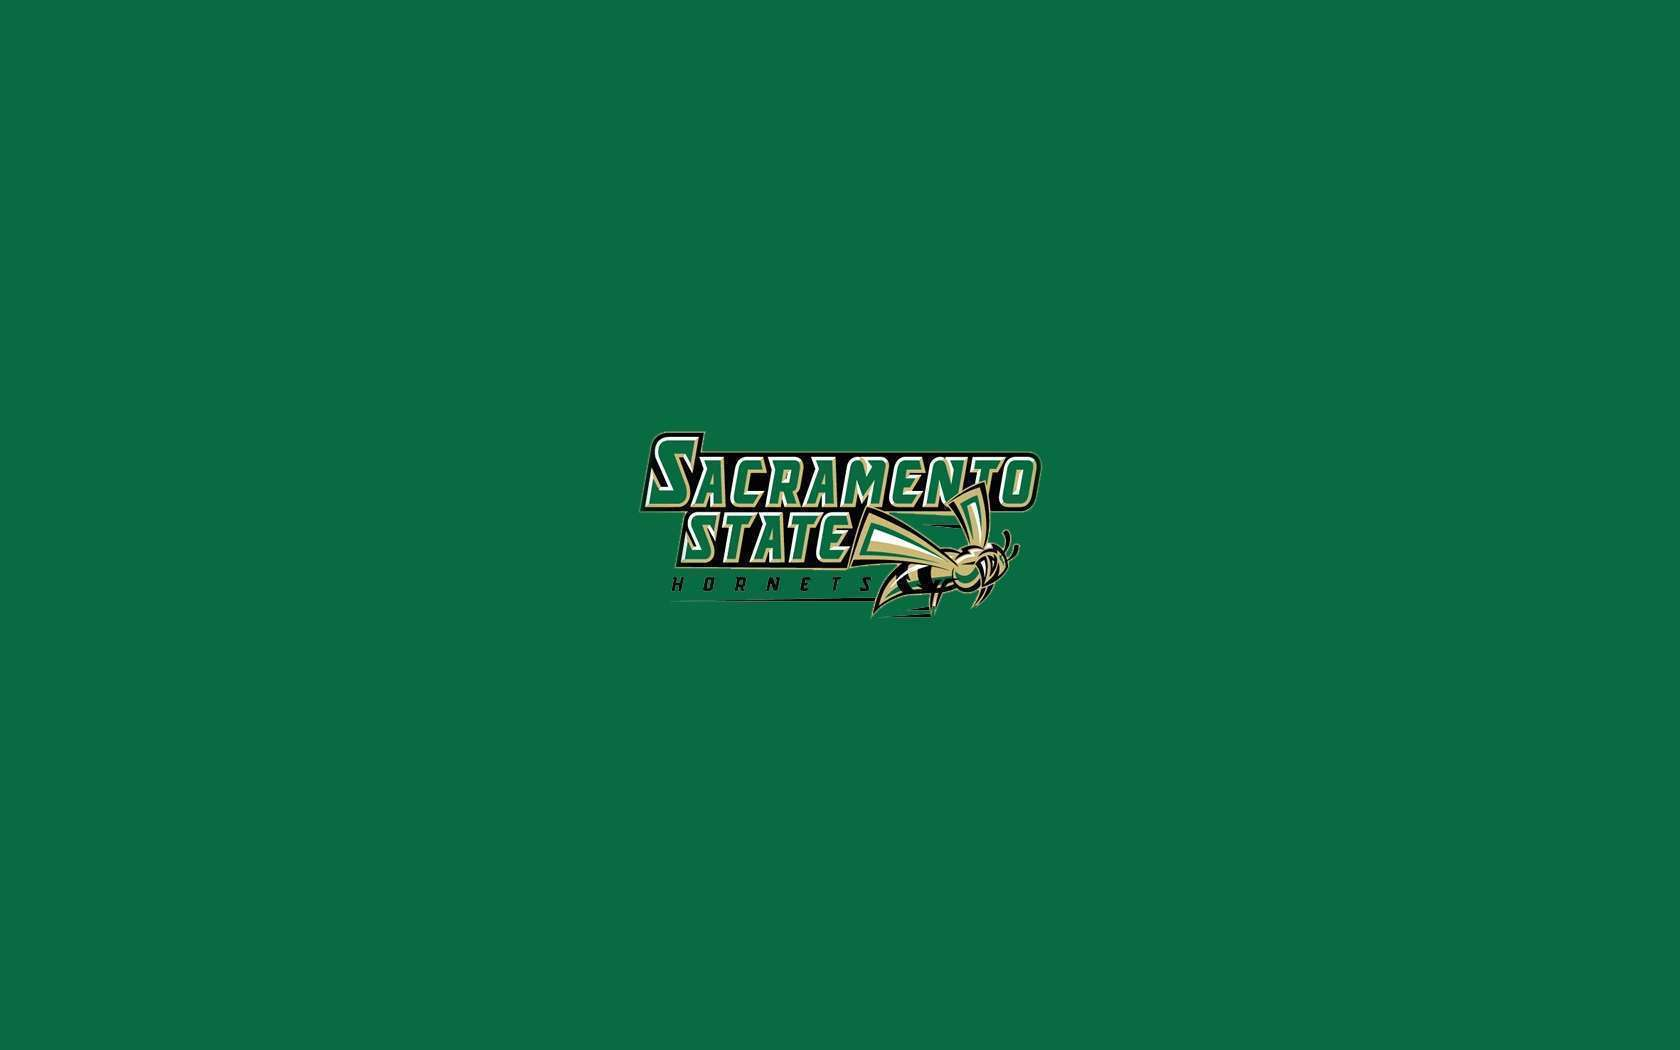 Sacramento State Hornets Wallpaper Hd Car Wallpapers